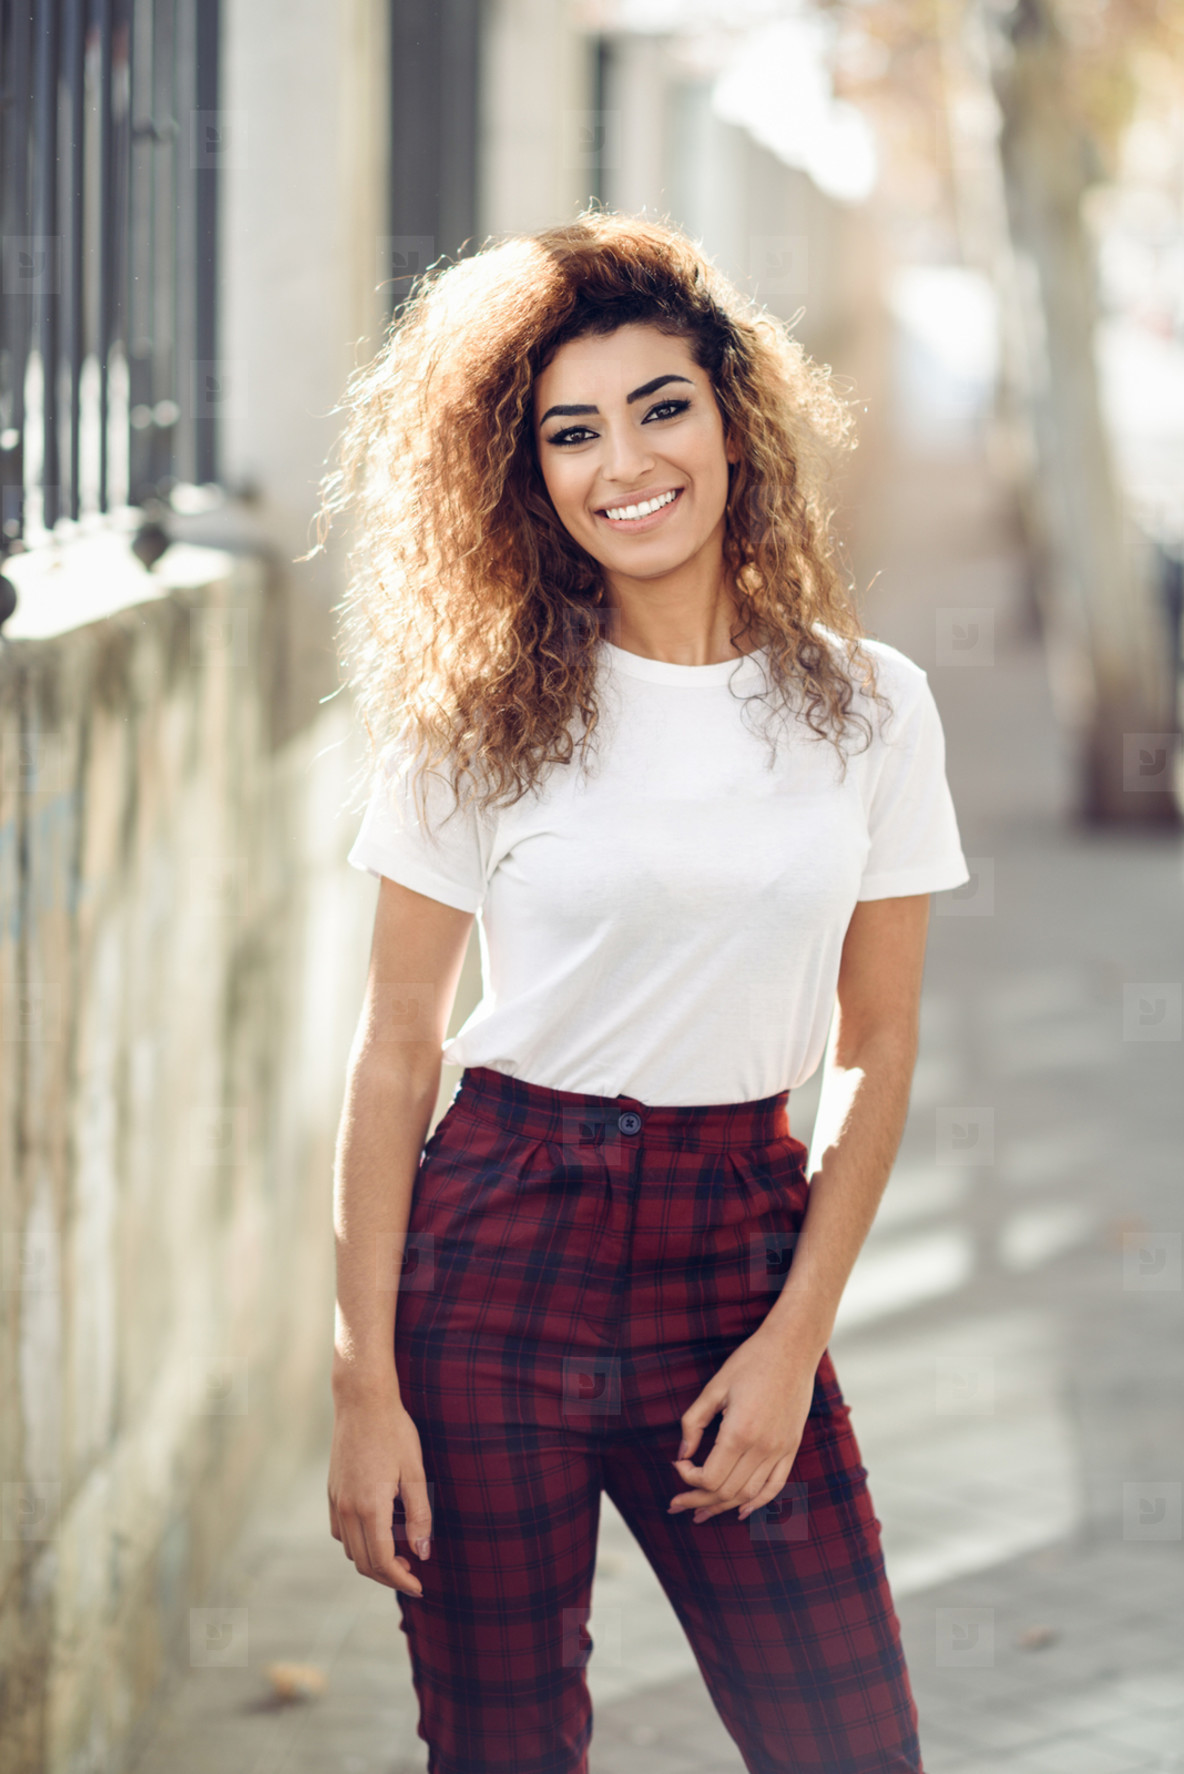 Arab girl in casual clothes in the street